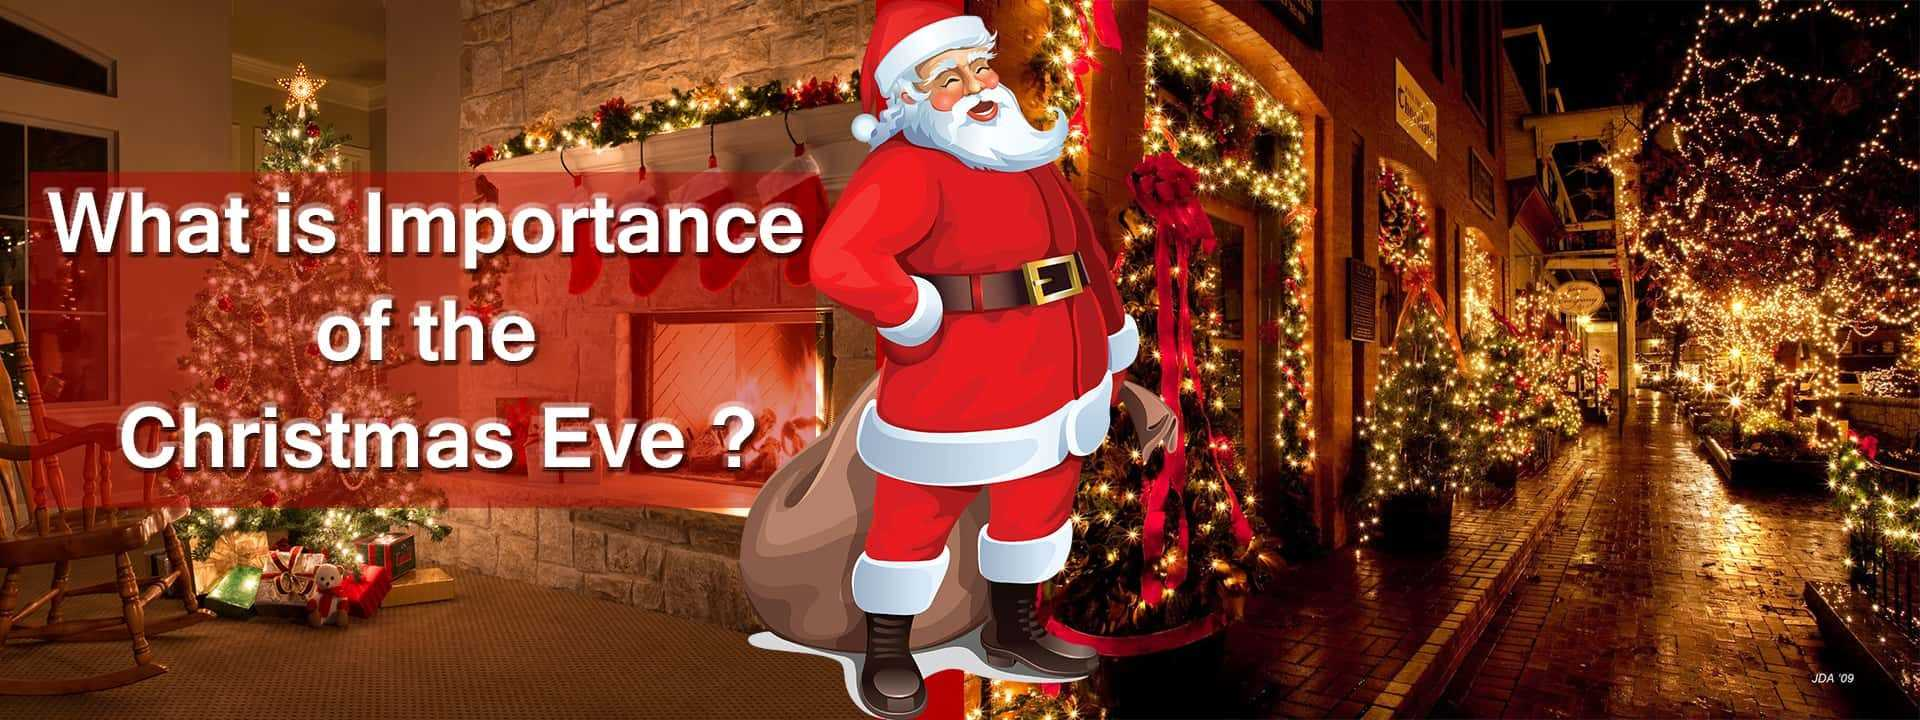 What is the Importance of Christmas Eve?